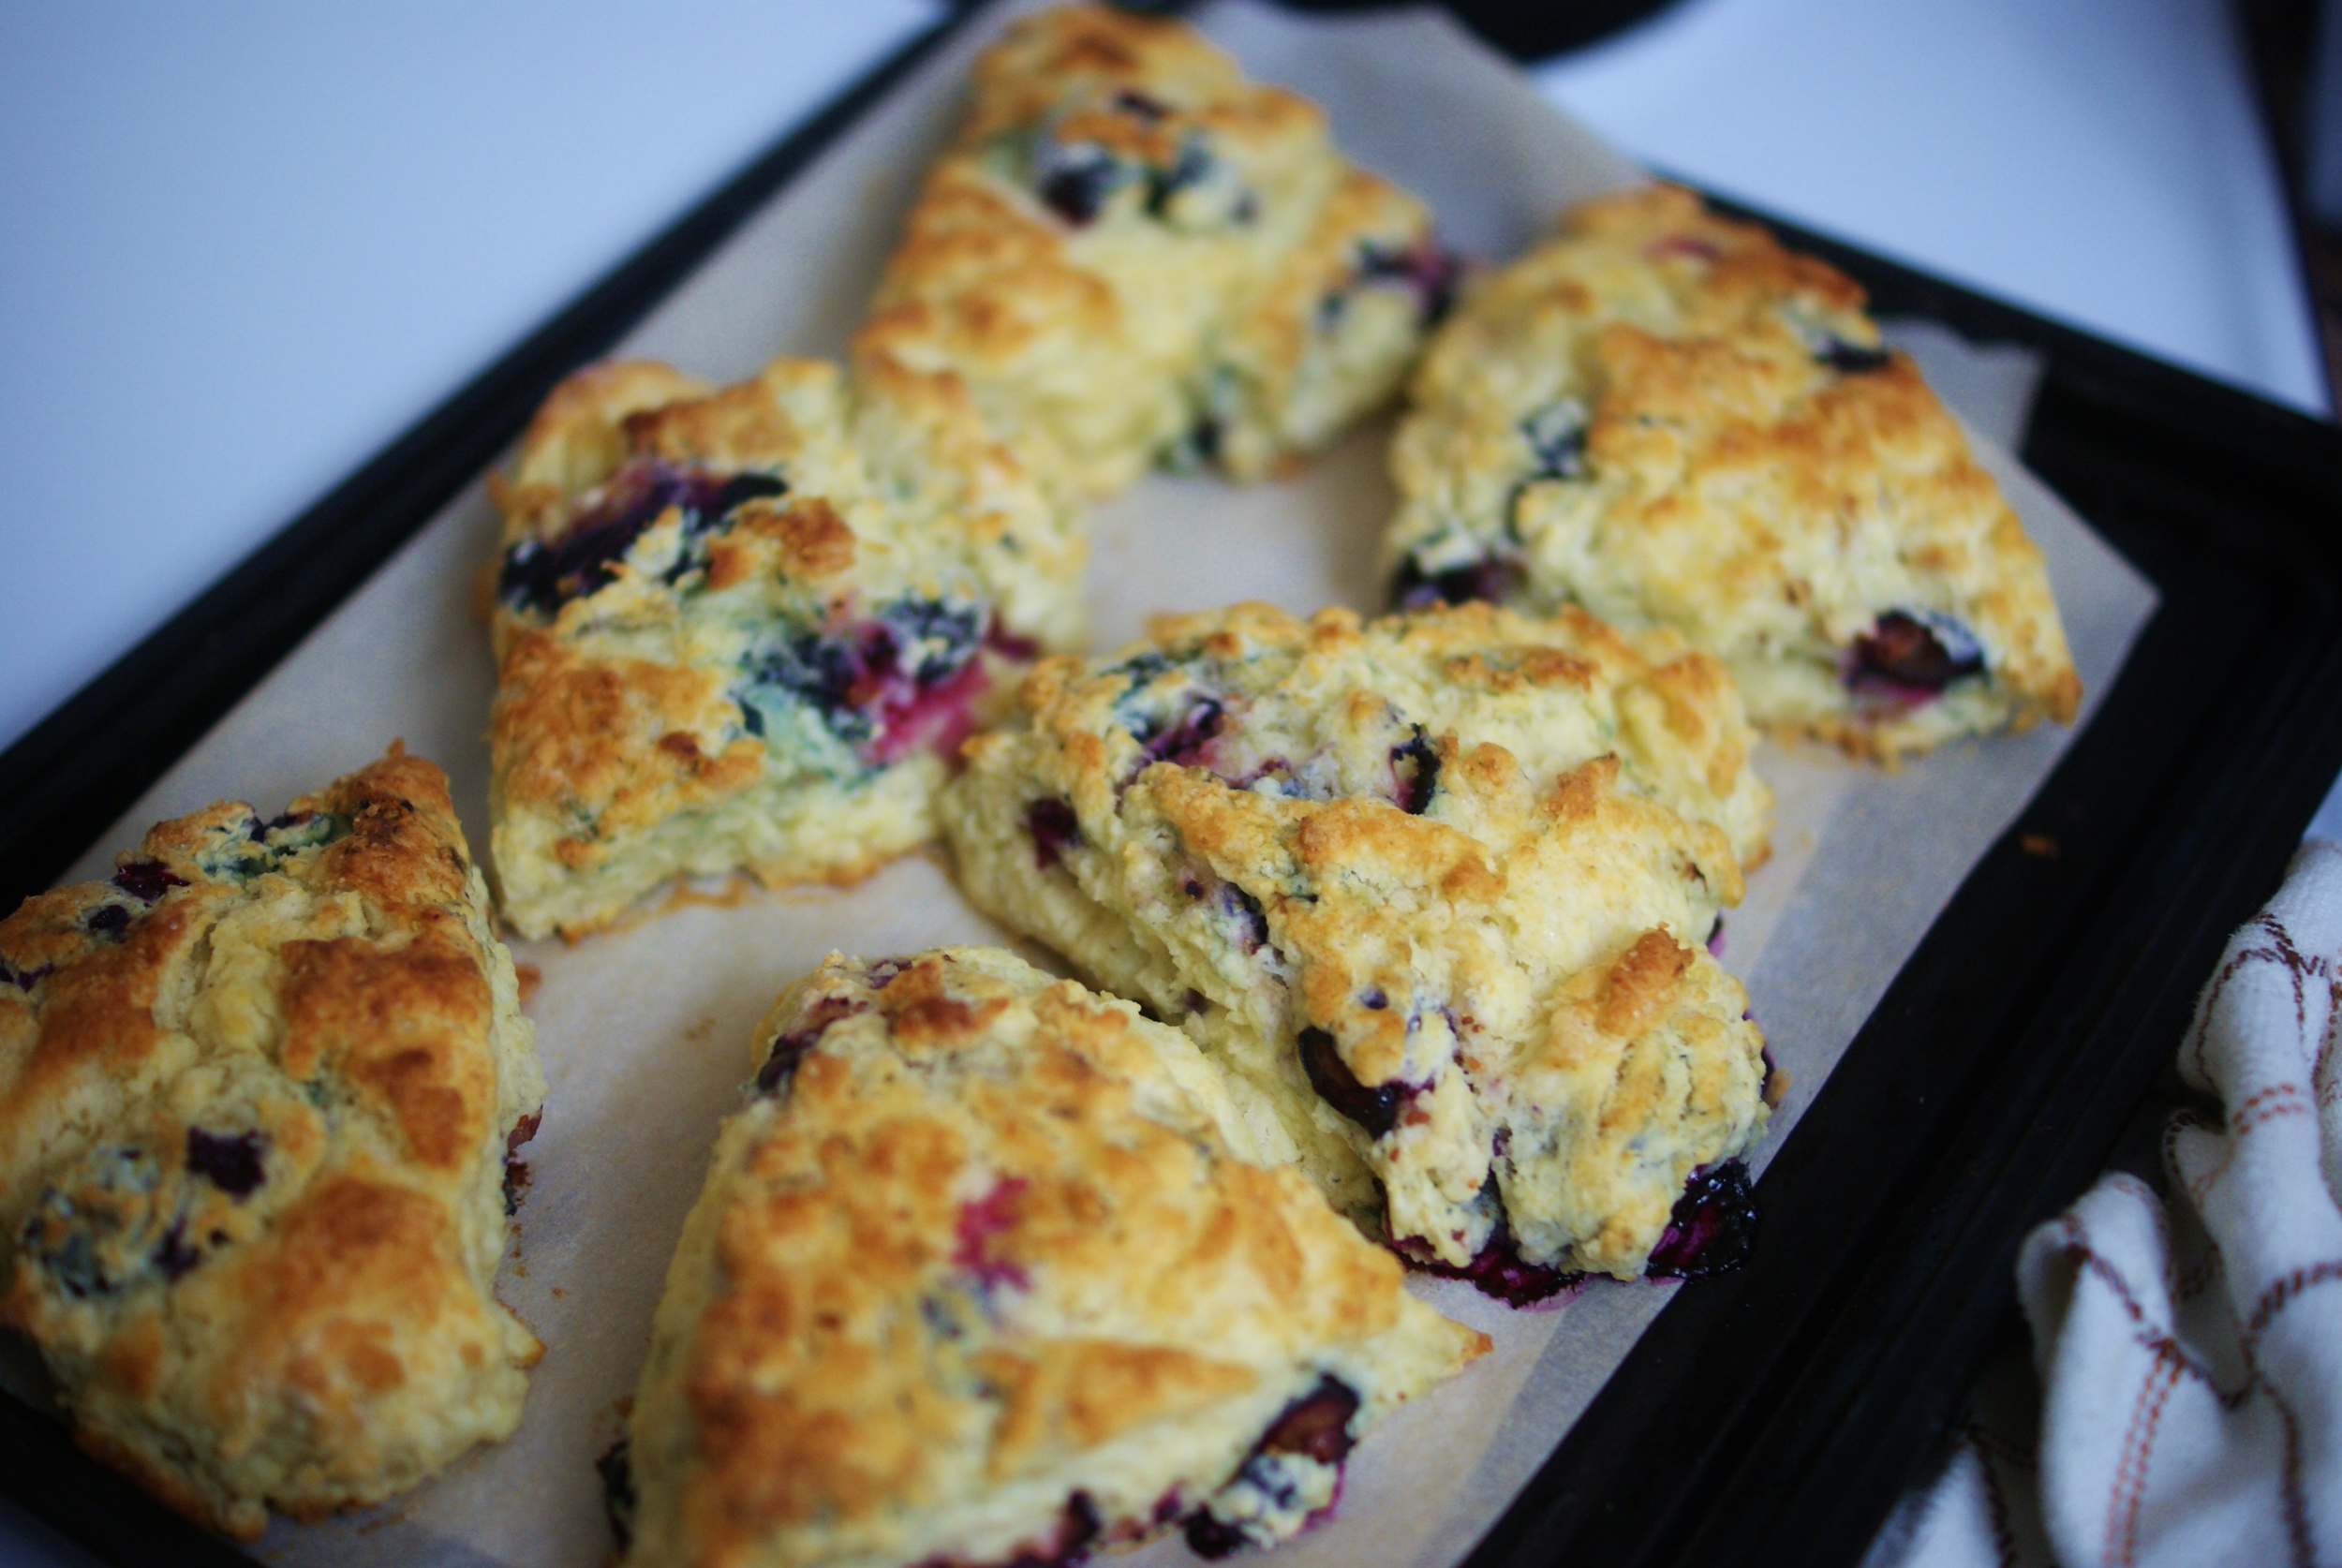 Blackberry scones, my personal faves and (in my opinion) the best ones for your first try.